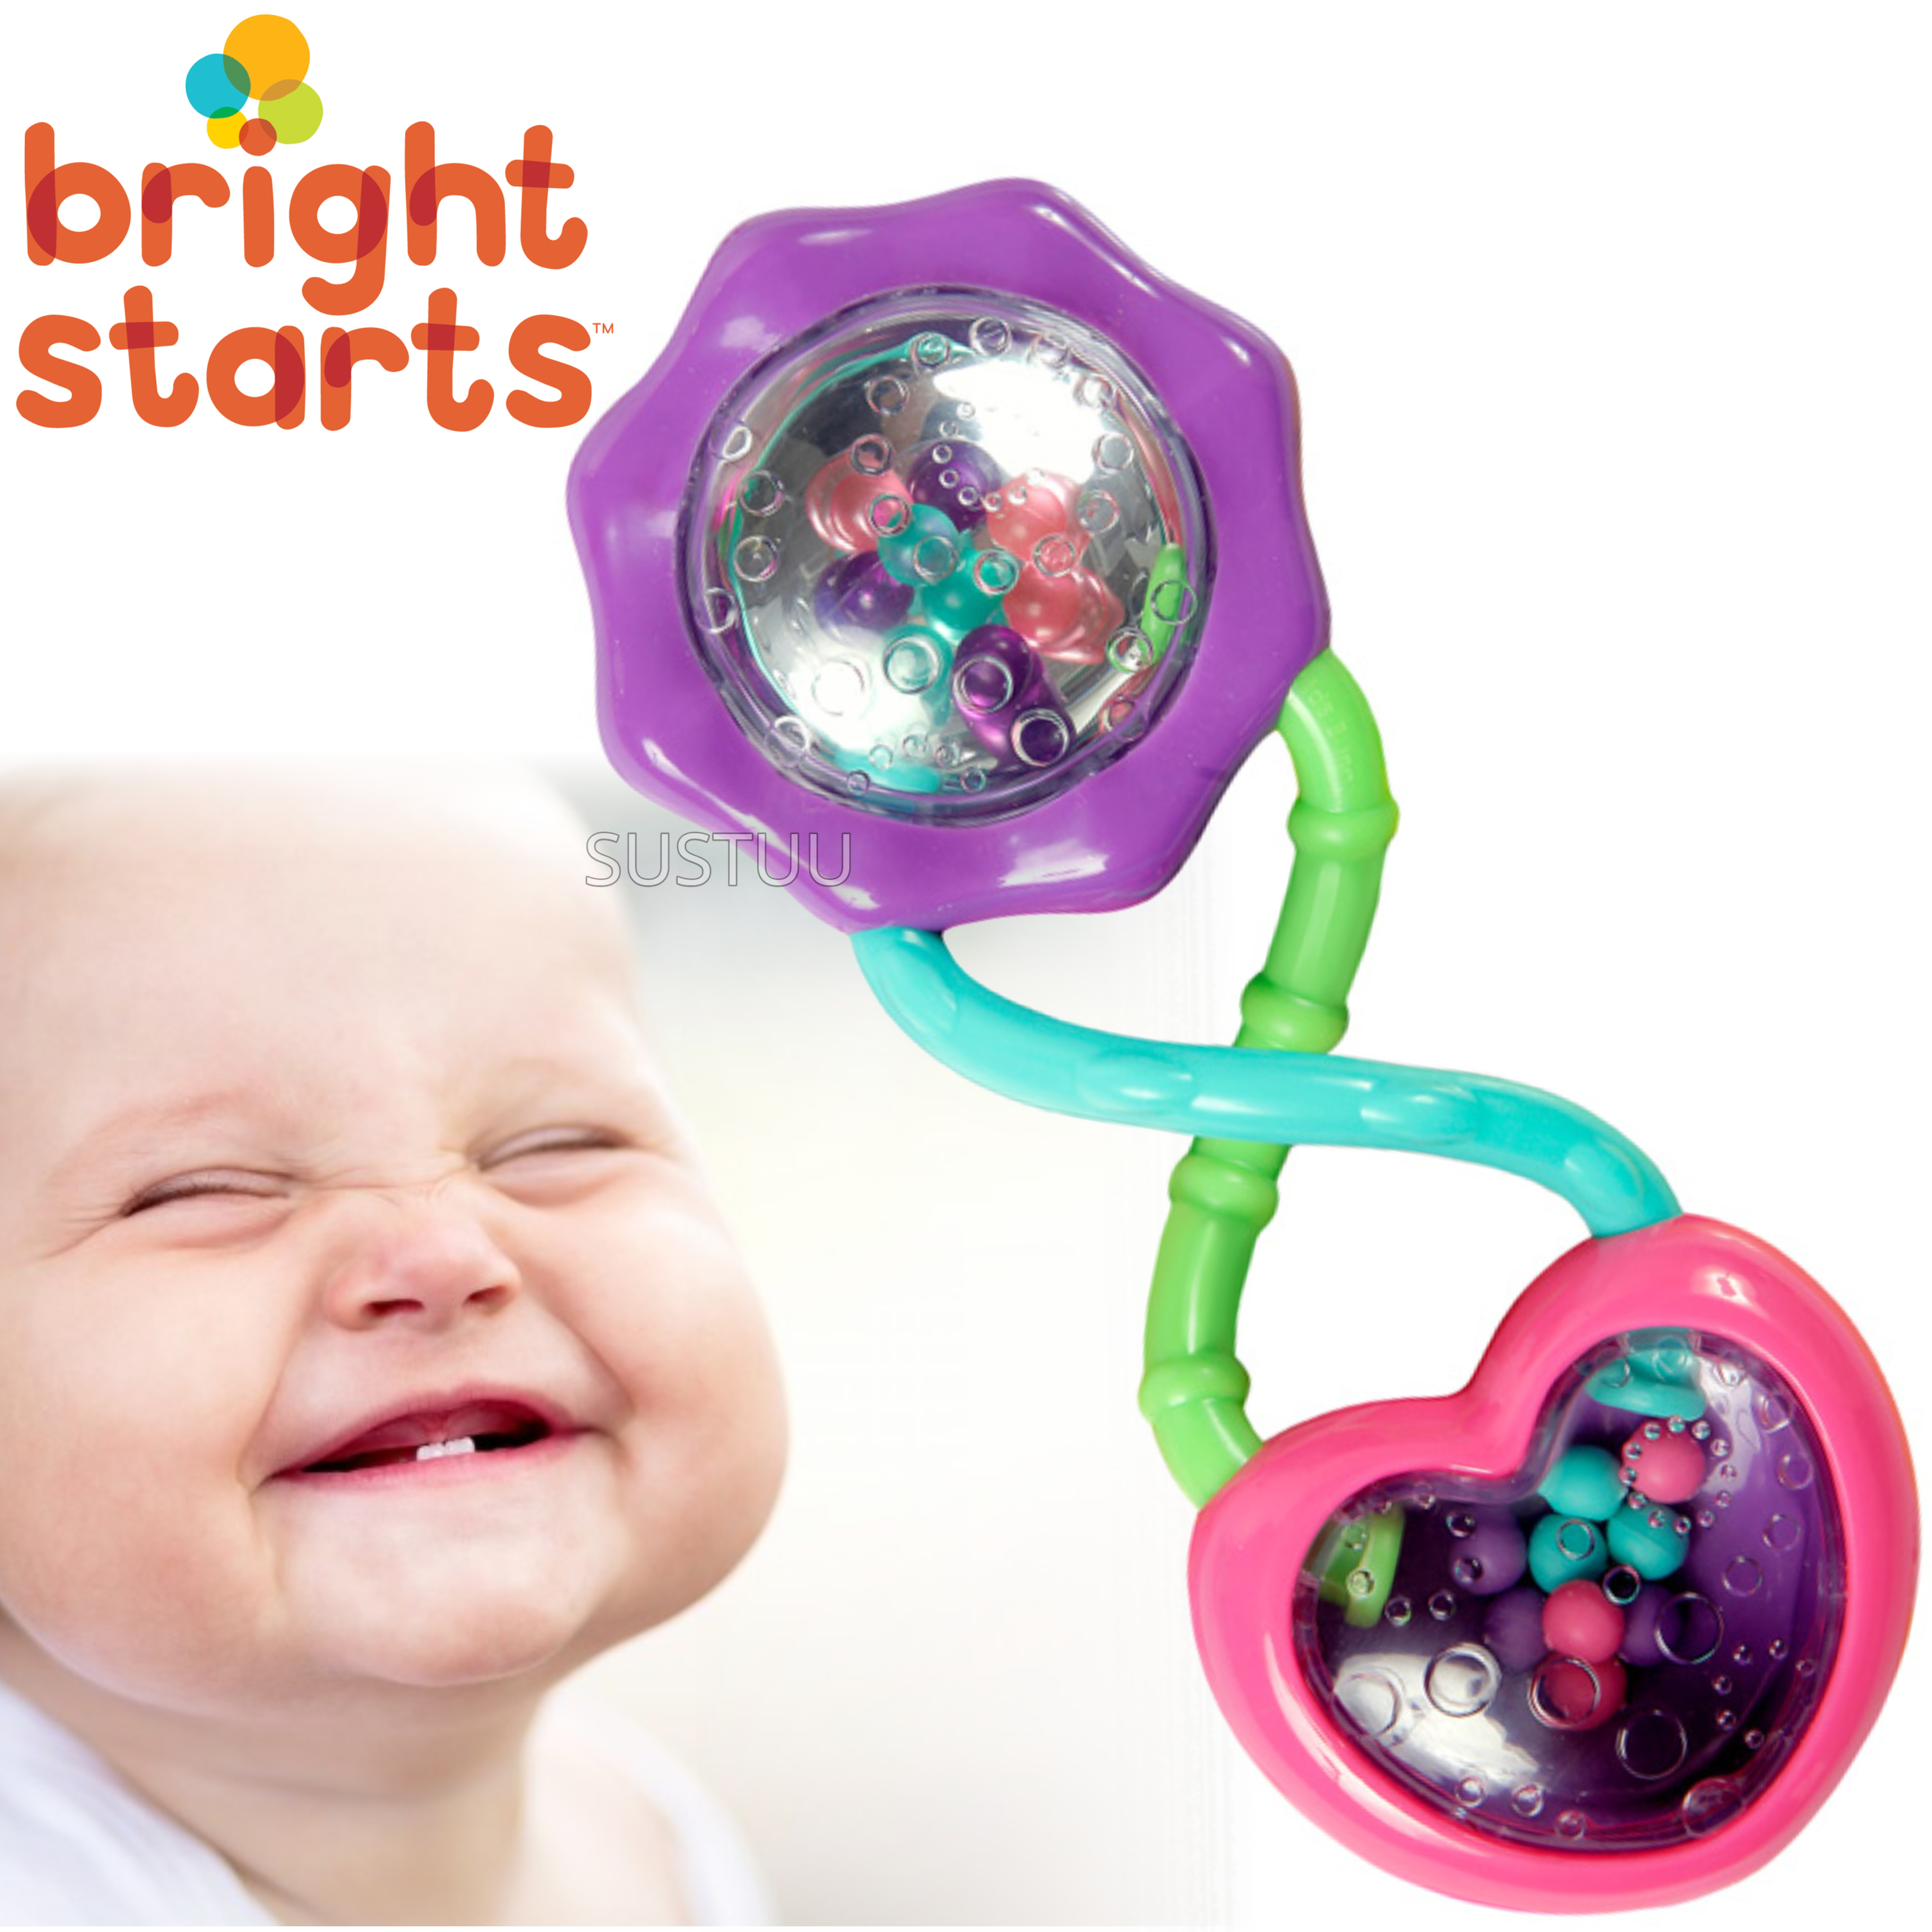 Bright Starts - Pink Rattle & Shake Barbell | Kids Activity Toy With Beads+Mirror